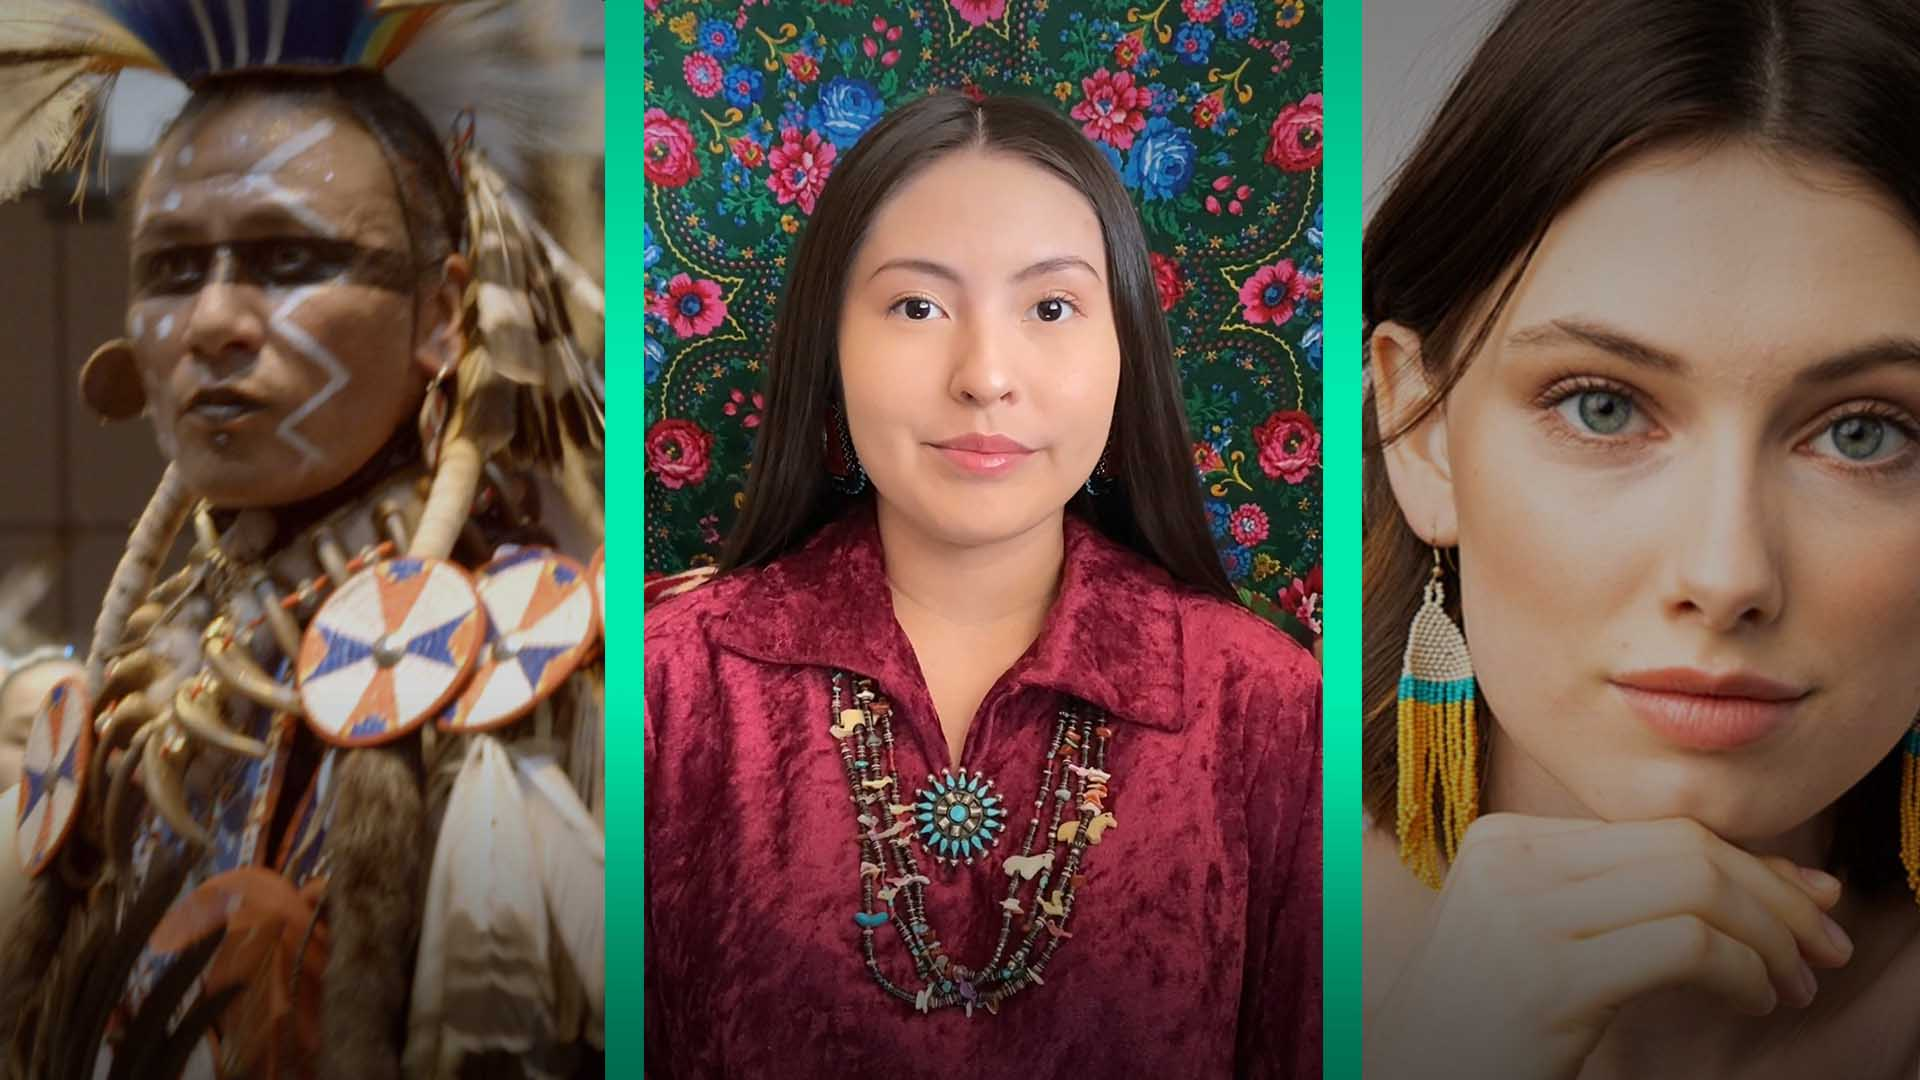 Culture Vultures? Teen Calls Out Appropriation of Native Designs